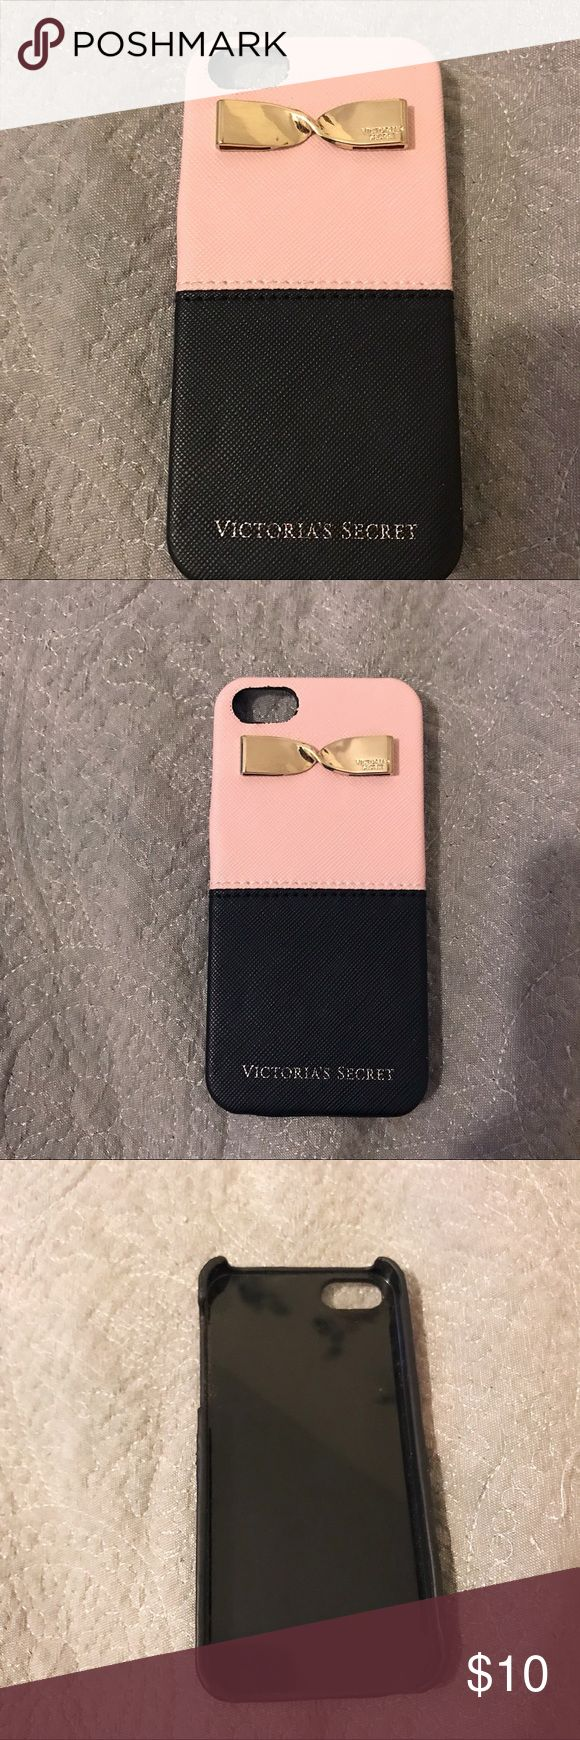 Victoria's Secret iphone case Victoria's Secret iphone 5s/5 case.  Hard case in light pink and black with a gold bow. Case feels like a cushion.  Great condition and protective of you phone.  I accept offers! Victoria's Secret Accessories Phone Cases